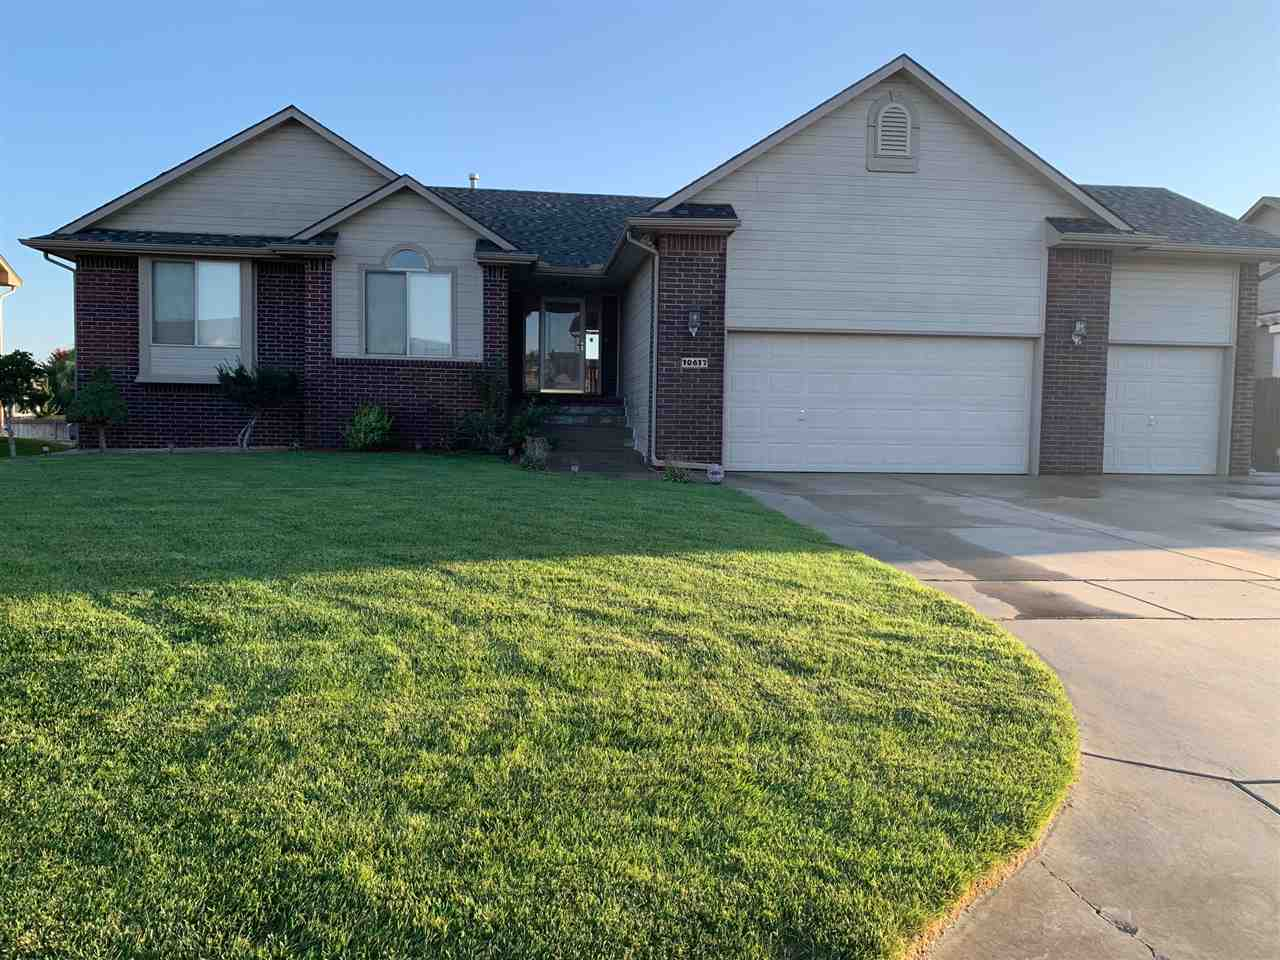 GREAT HOME IN GREAT NEIGHBORHOOD, READY TO MOVE IN. 4 BR, 3 BATH, WOOD FLOOR,NEW INTERIOR PAINT, NEW DISHWASHER, NEW COOKTOP AND MANY MORE. VIEW OUT/WALKOUT BASEMENT. CONTACT LISTING AGENT FOR PRIVATE SHOWING.